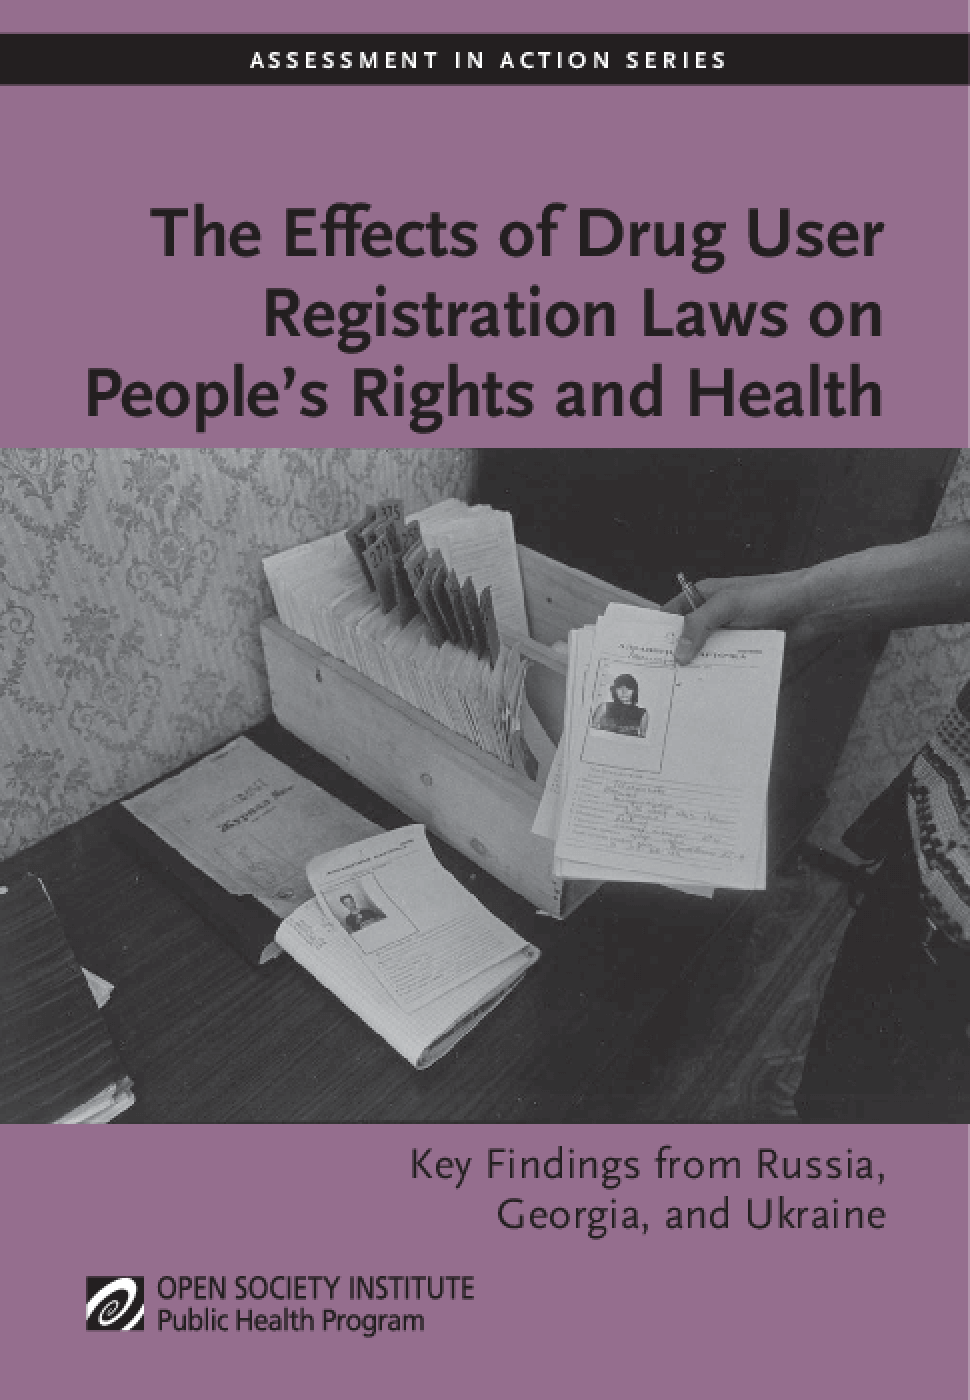 The Effects of Drug User Registration Laws on People's Rights and Health: Key Findings From Russia, Georgia, and Ukraine